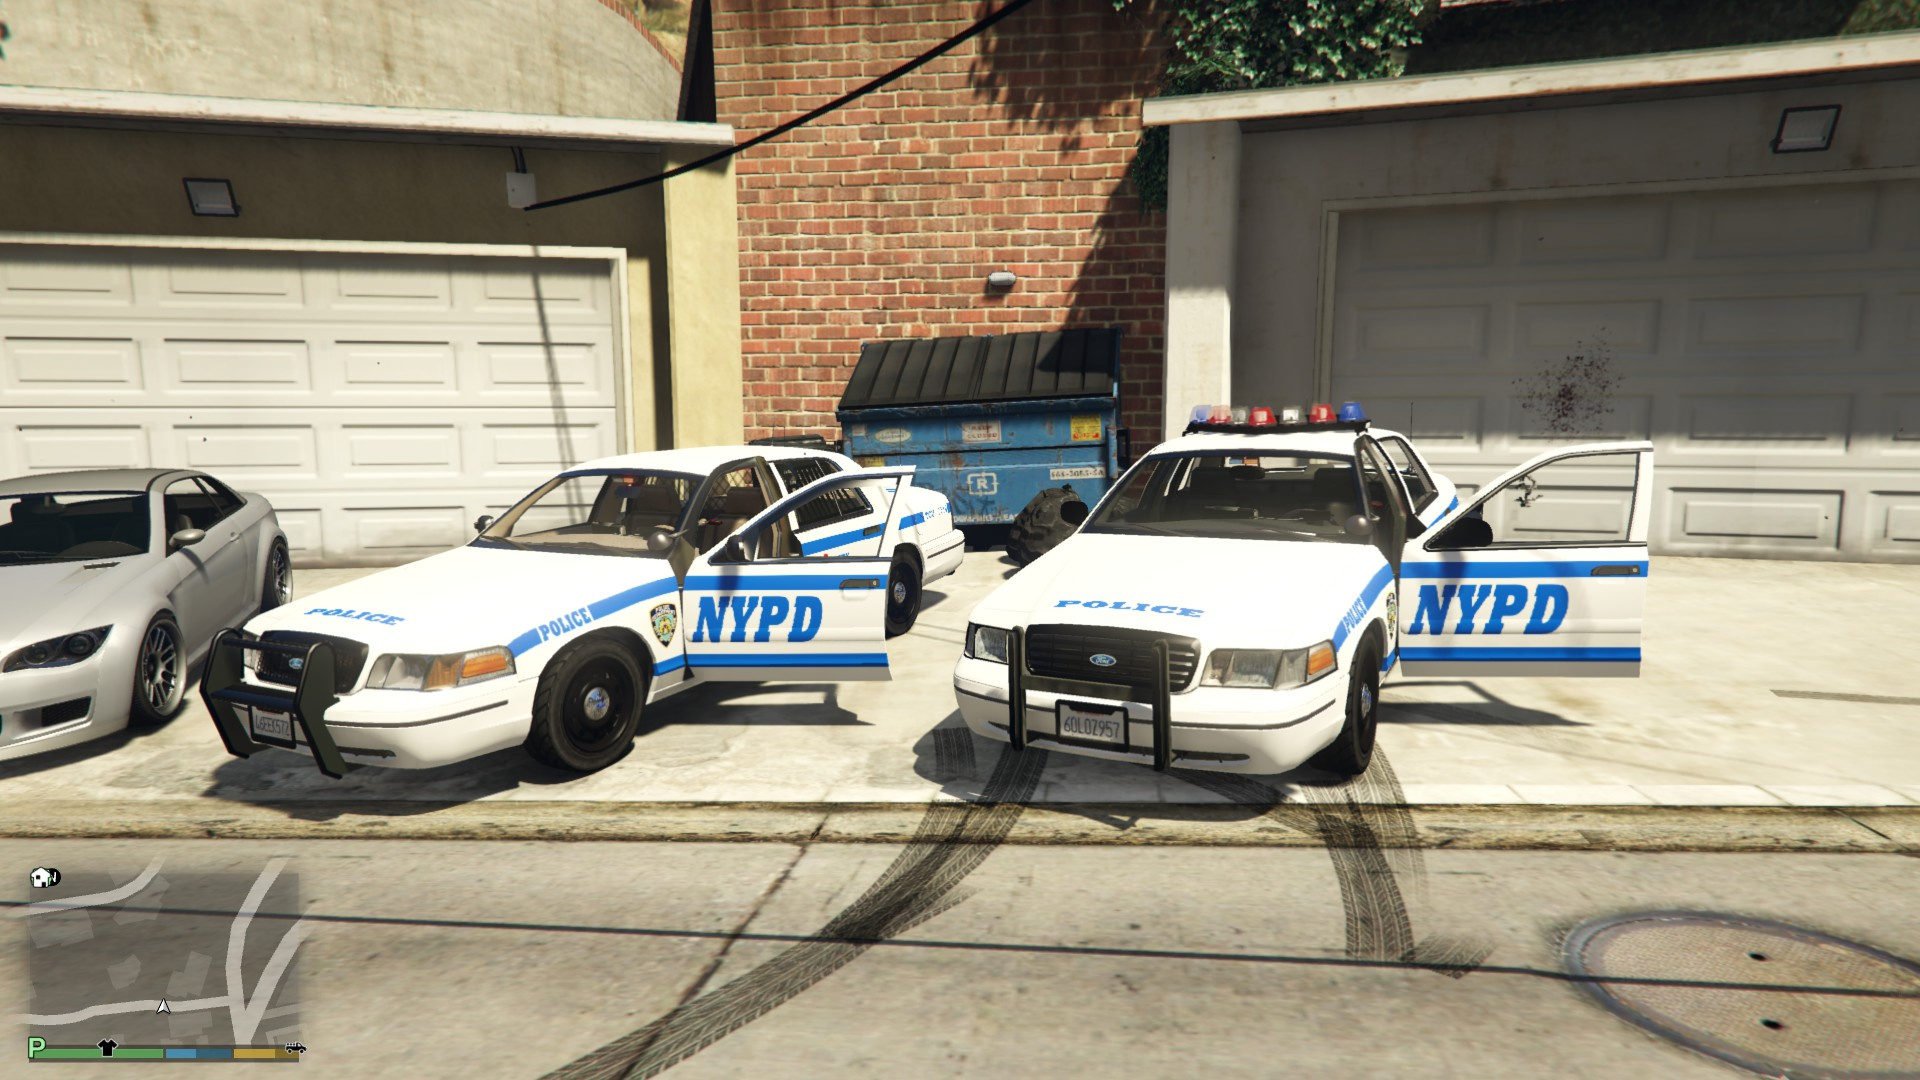 Nypd Rumbler Siren furthermore Showthread moreover Lspd Frogger Helicopter This Replaces The Police Maverick in addition What sound does a siren make in addition Watch. on federal q siren sound